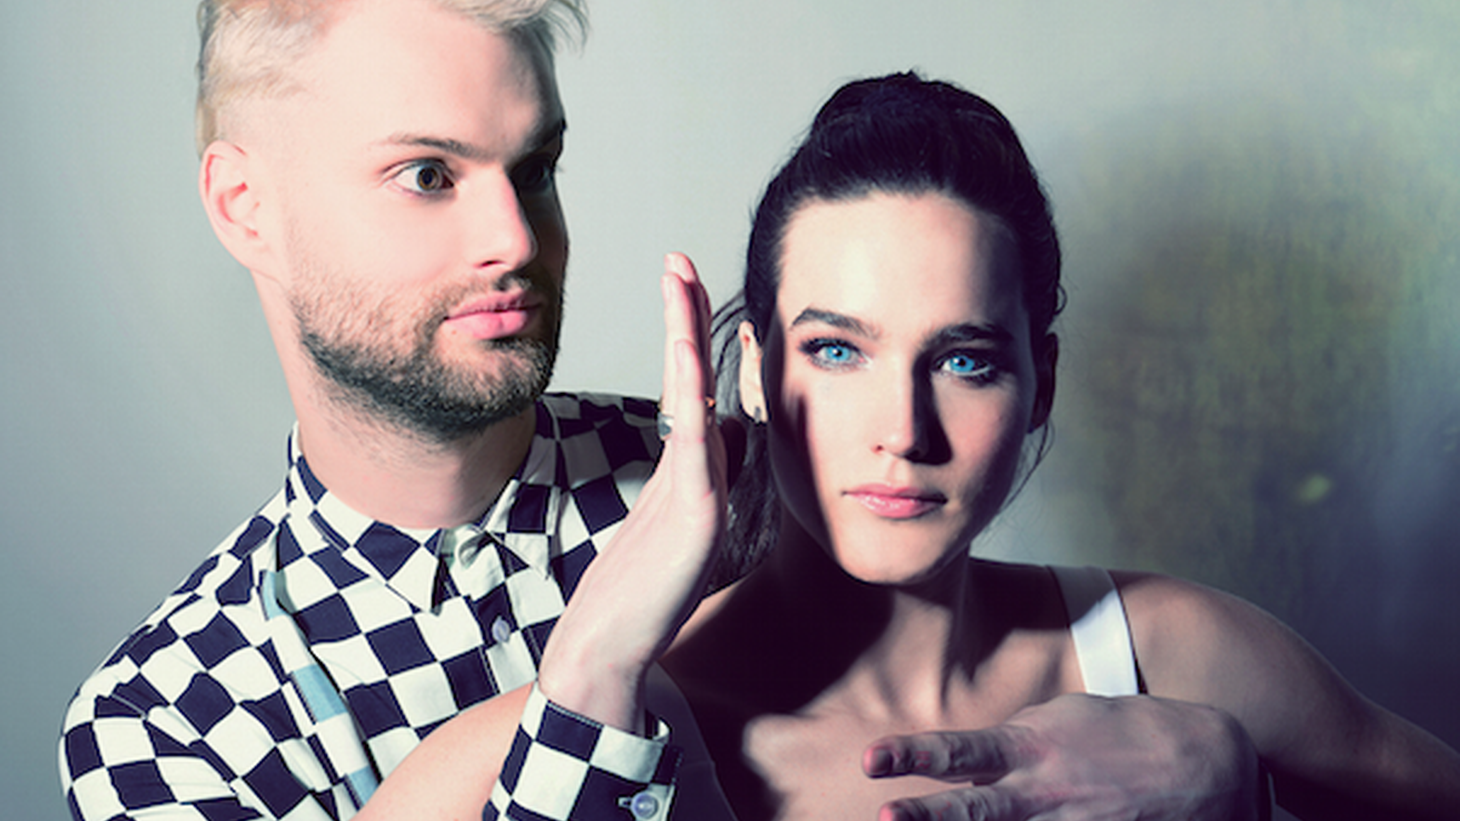 Dynamic duo Sofi Tukker have found an impassioned following for their infectious dance pop sound. They just released their debut full length Treehouse and will return to our studio for a special 4-song set at 10am.